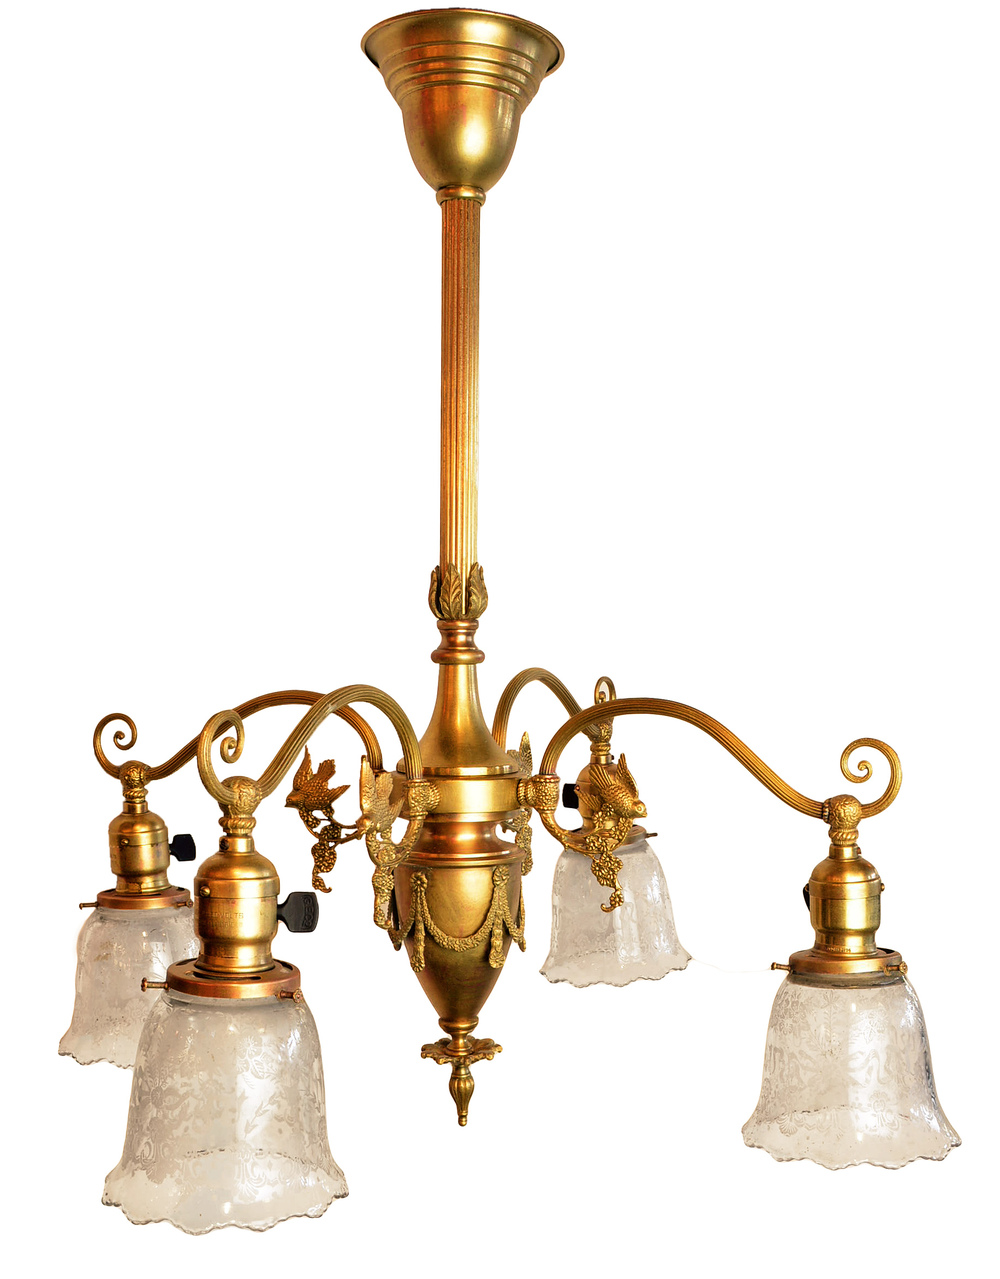 LIGHTOILER BRASS 4-ARM CHANDELIER